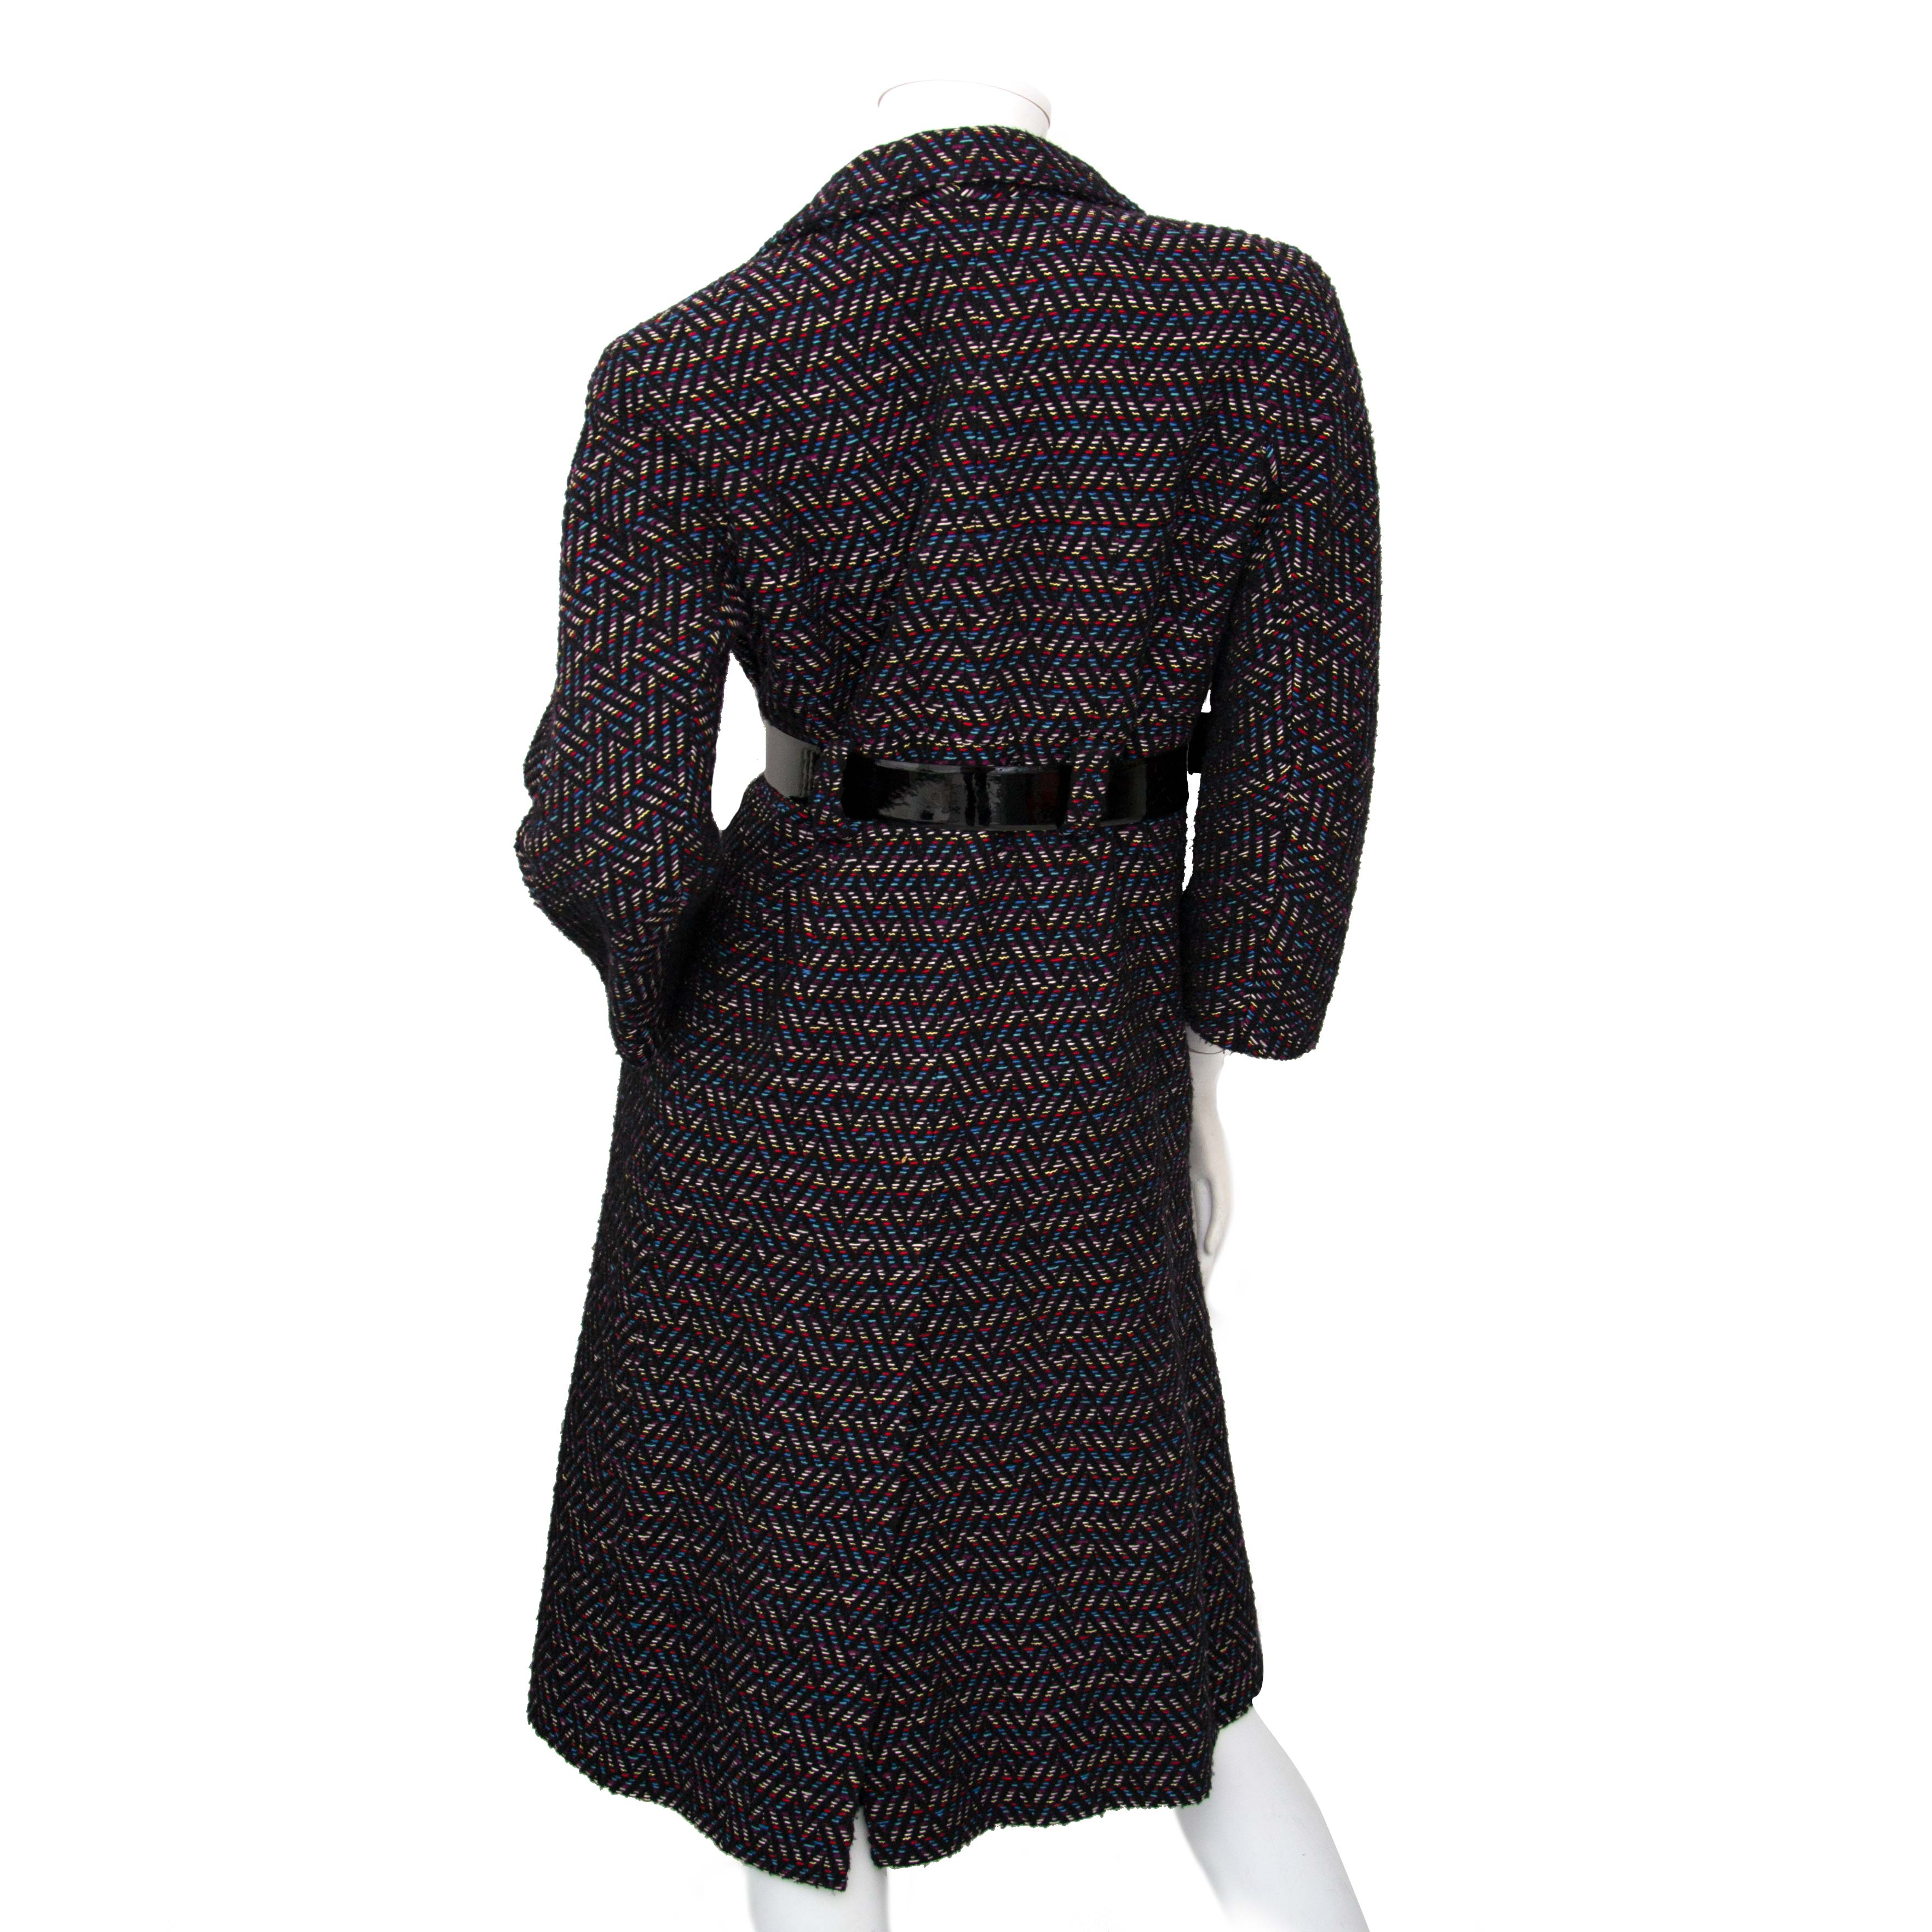 Are you looking for an authentic Chanel Tweed Coat ? Buy safe online at Labellov